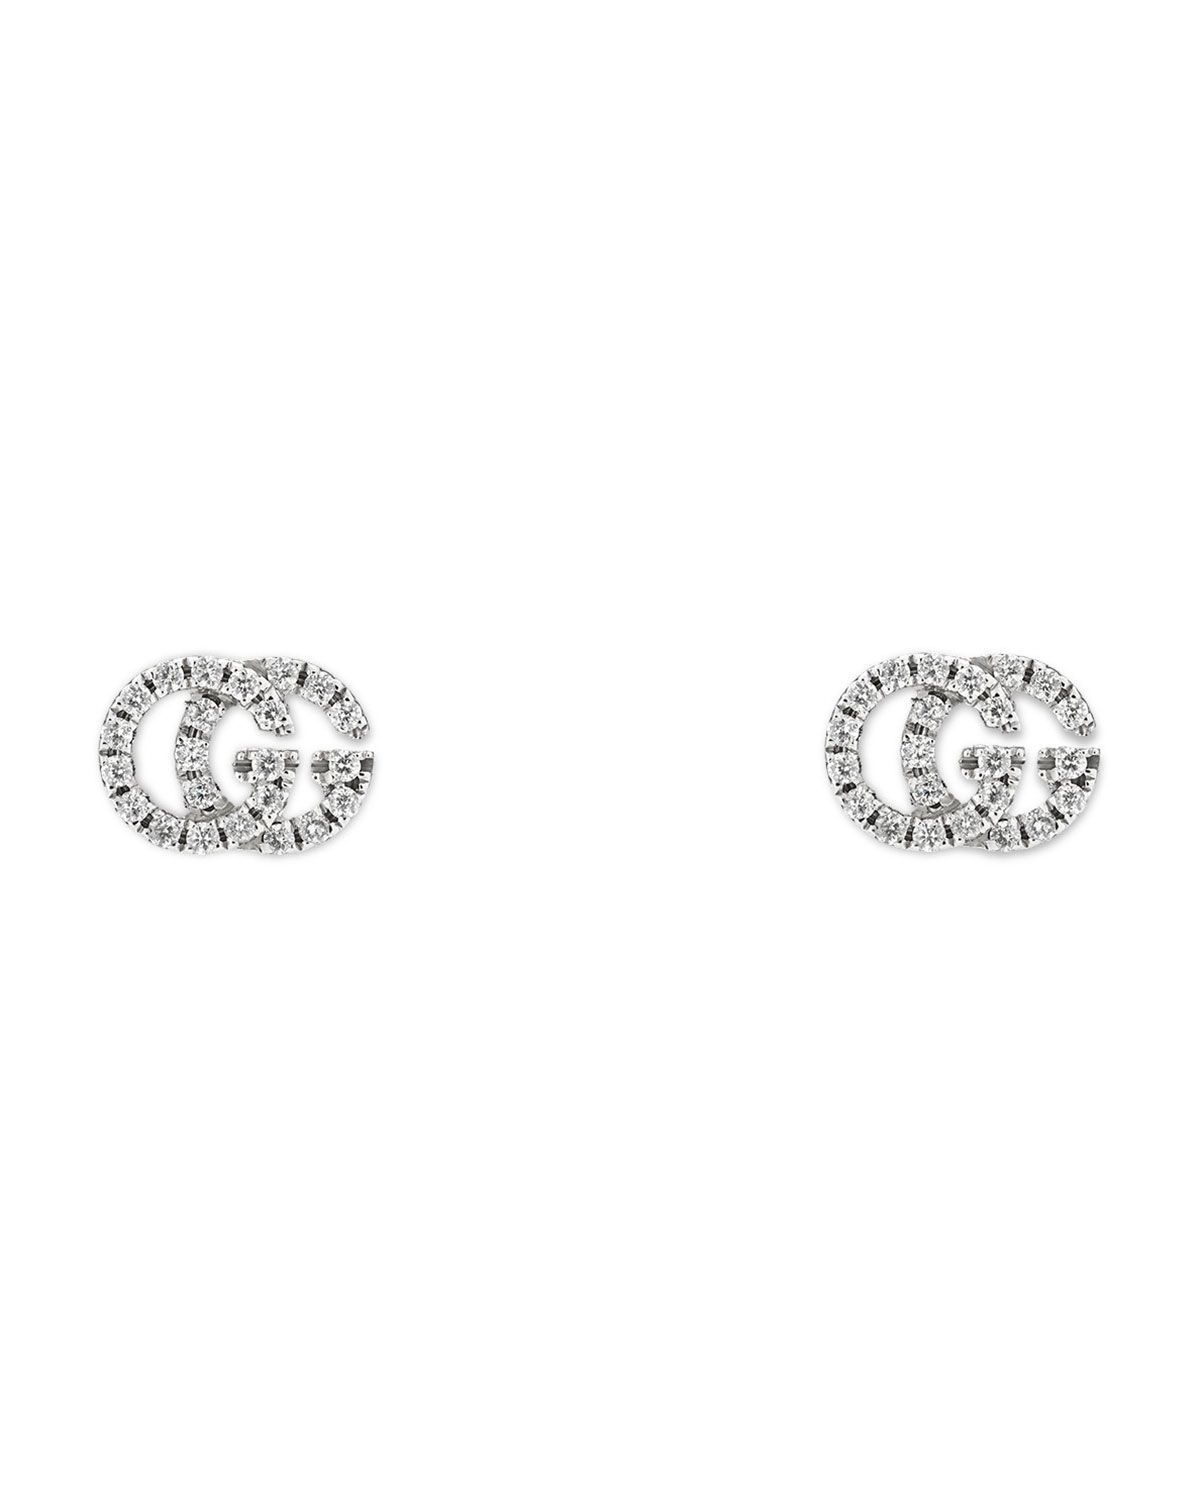 efd01541ca6 Gucci Running G Pave Diamond Stud Earrings in 18K White Gold ...